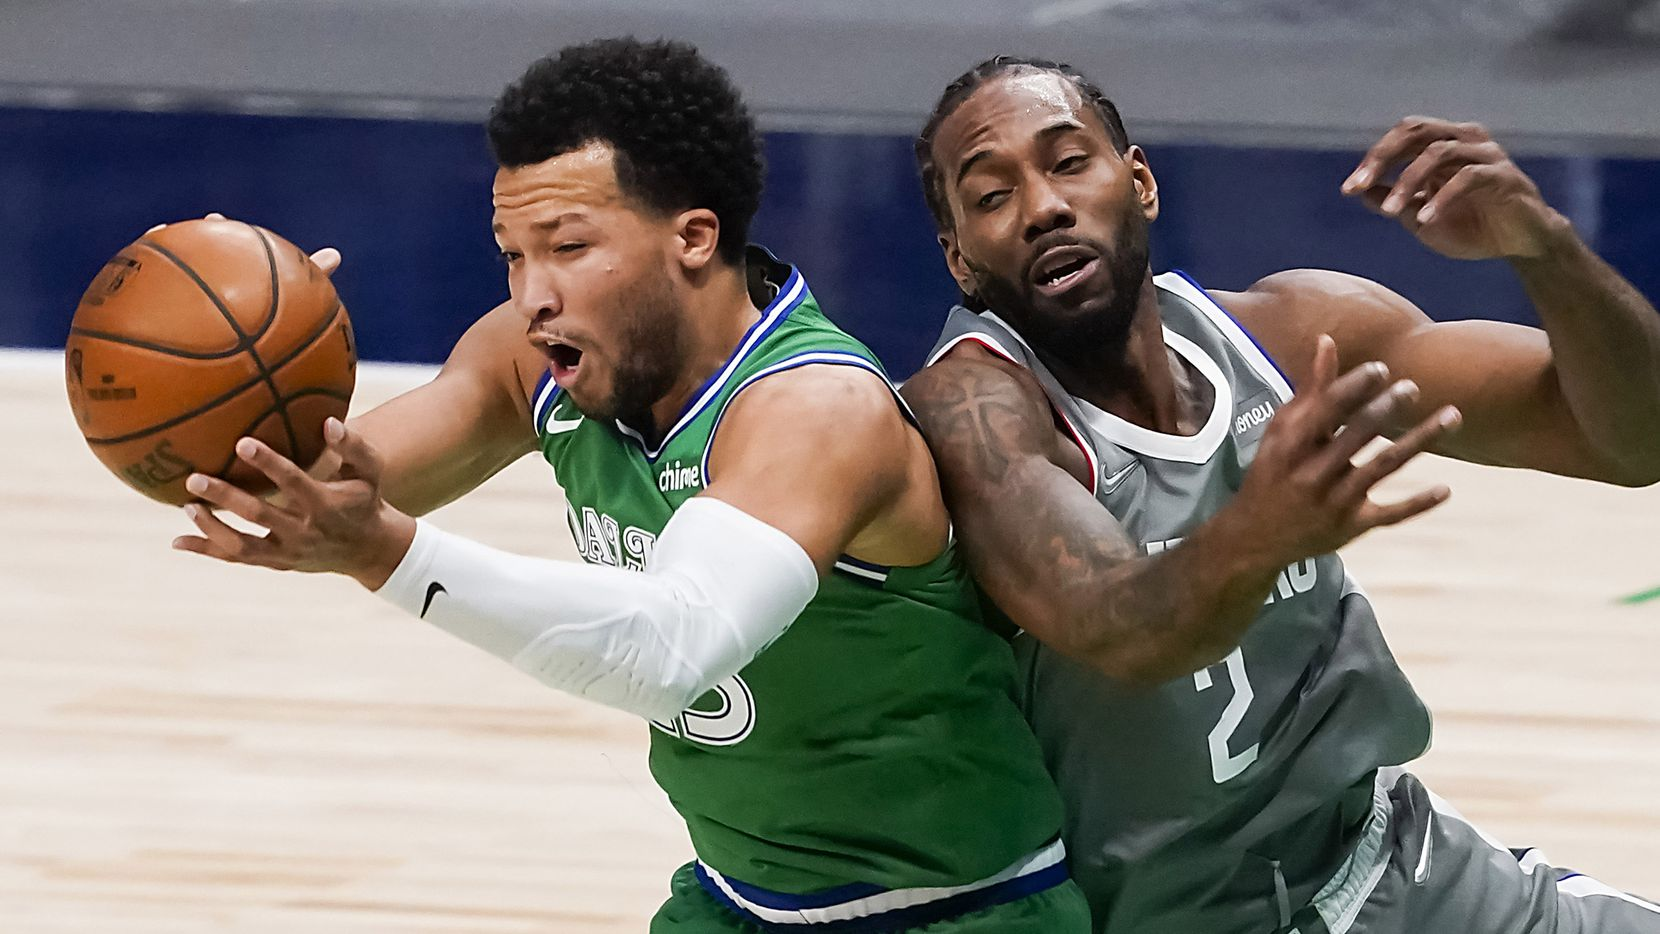 Dallas Mavericks guard Jalen Brunson (13) grabs a rebound away from LA Clippers forward Kawhi Leonard (2) during the first quarter of an NBA basketball game at American Airlines Center on Wednesday, March 17, 2021, in Dallas. (Smiley N. Pool/The Dallas Morning News)